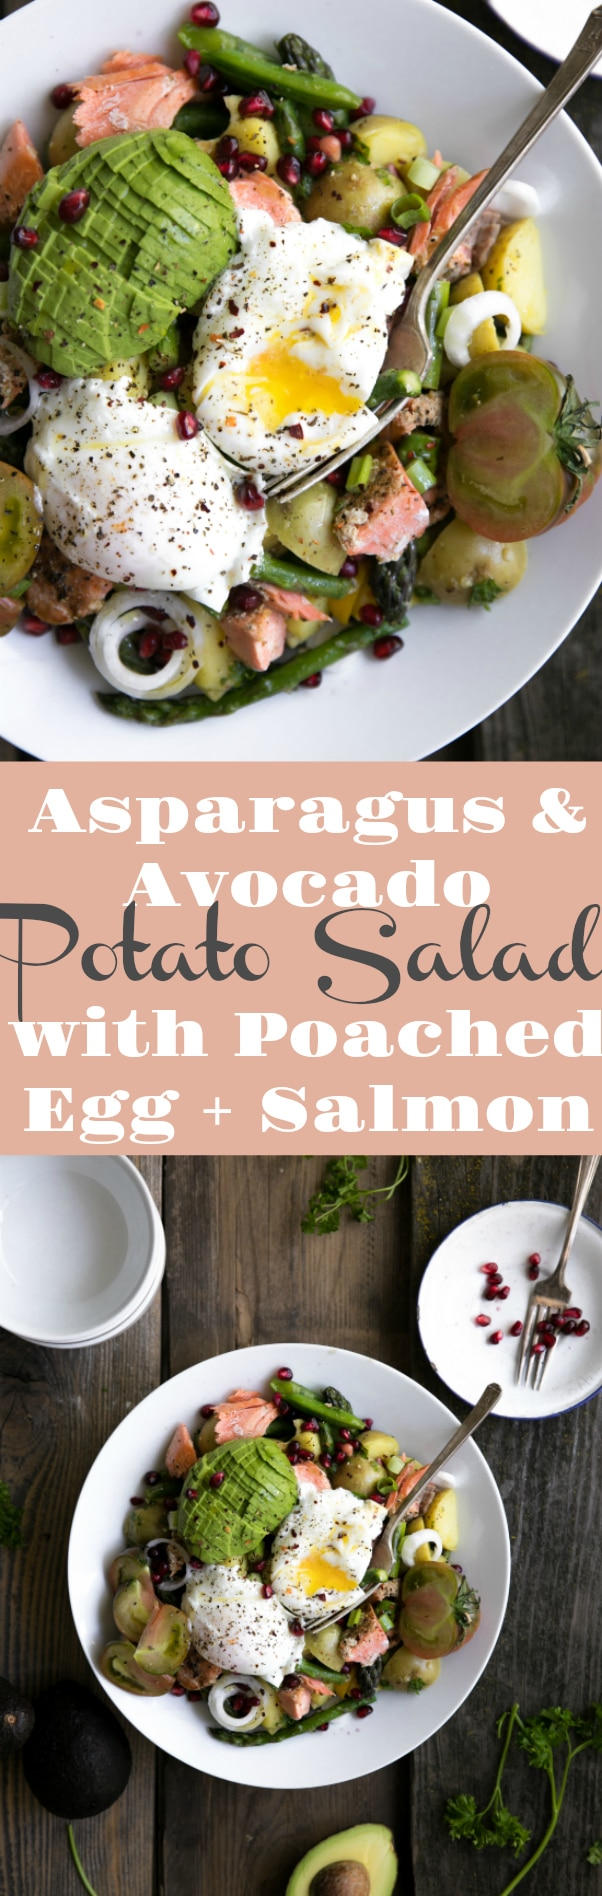 Asparagus and Avocado Potato Salad with Poached Egg and Salmon via @theforkedspoon #salmon #potatosalad #saladrecipe #salmonrecipe #eggs #poachedeggs #asparagus